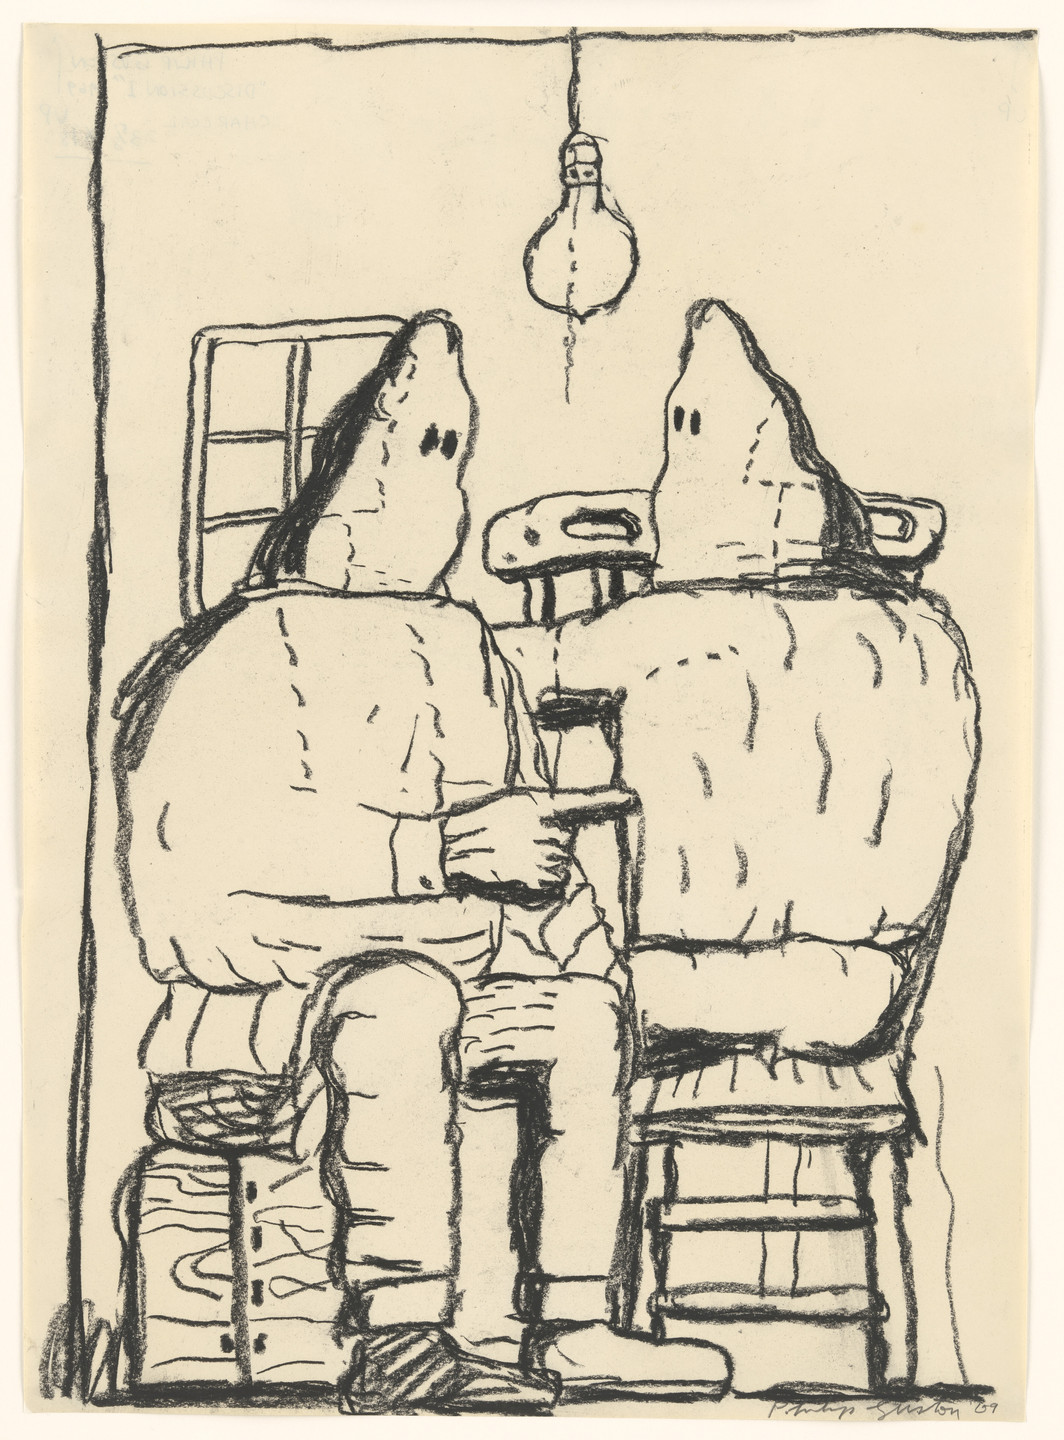 Philip Guston. Discussion I. 1969